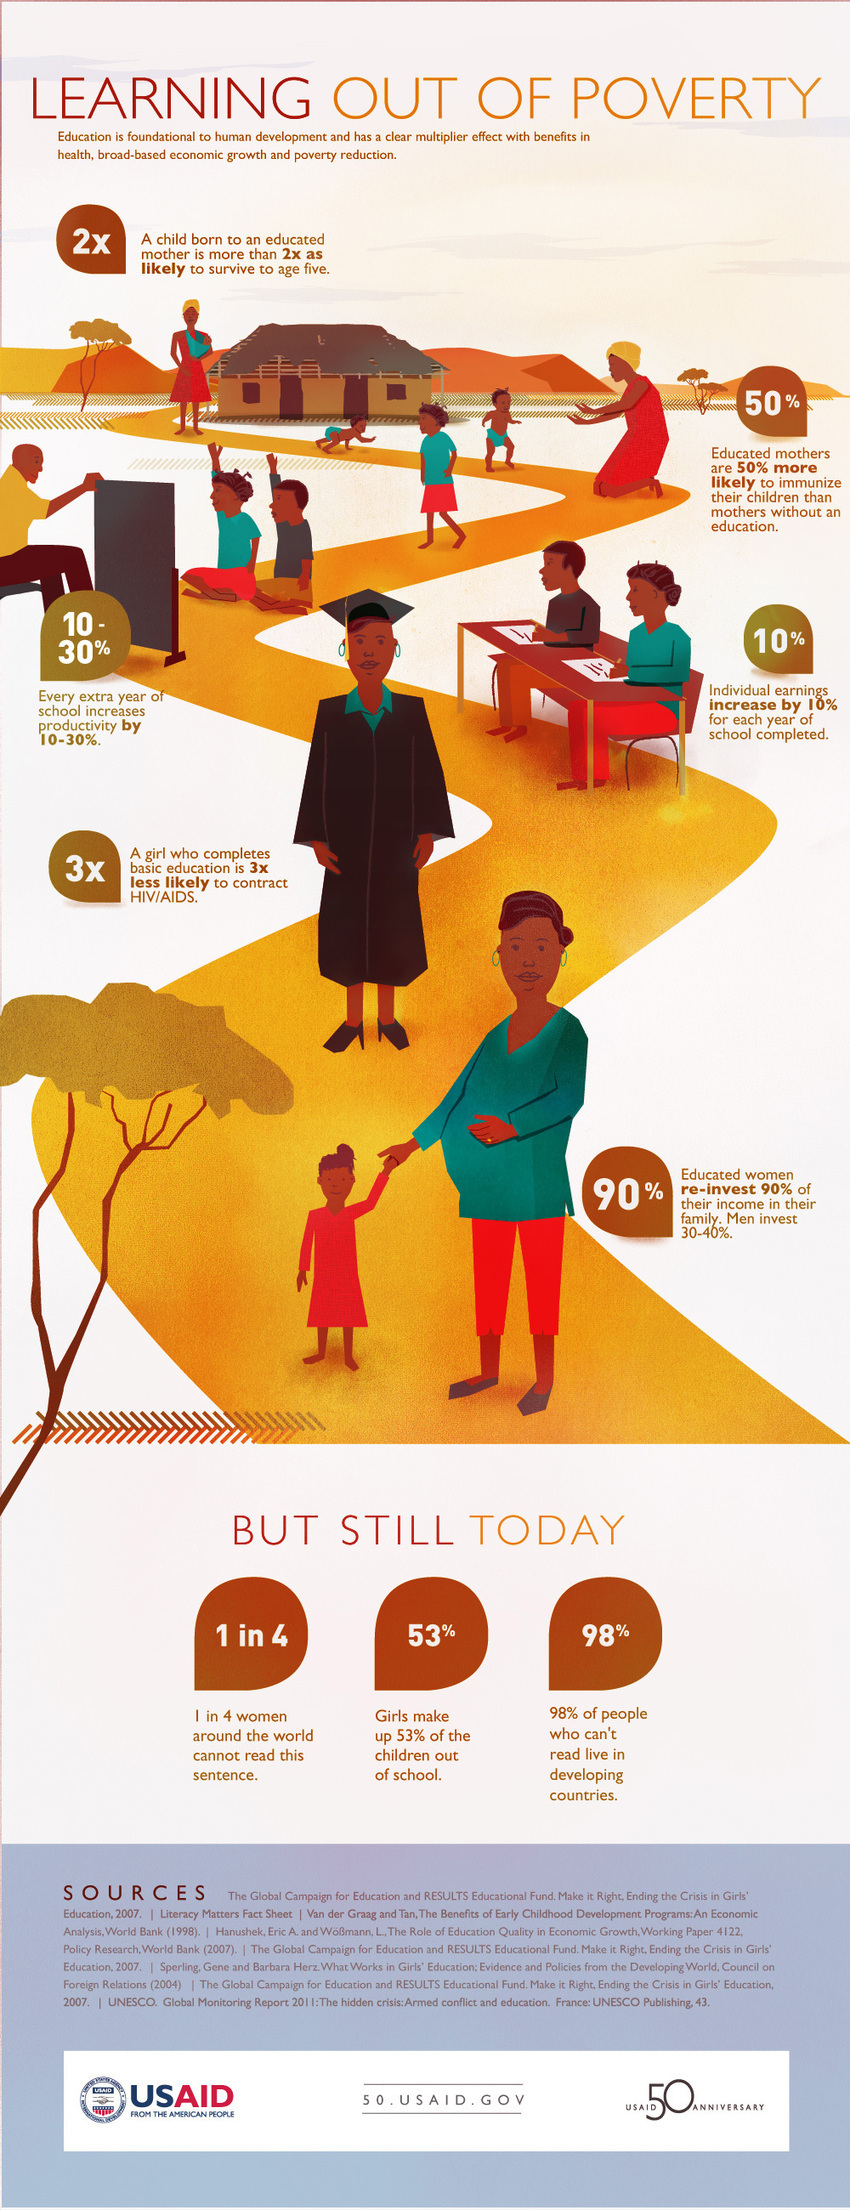 the social problem of poverty in the united states and the role of education in reducing poverty A poverty, not education, crisis in us: column oliver thomas published 4:57 pm et dec 10, 2013 new studies show that the number of poor children is rising and the impact it has on learning.